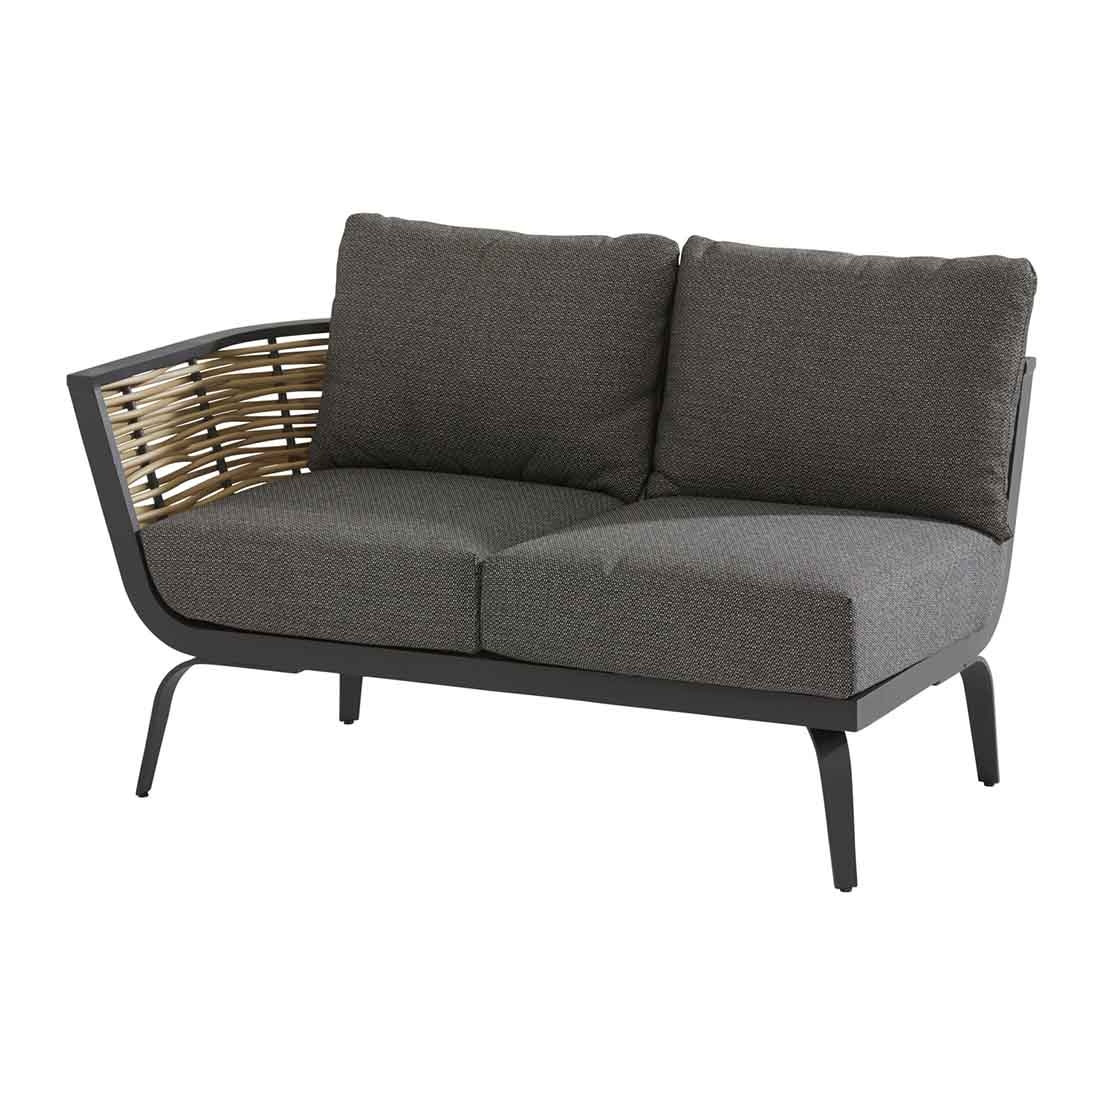 Antibes 2 seater bench right arm with 4 cushions